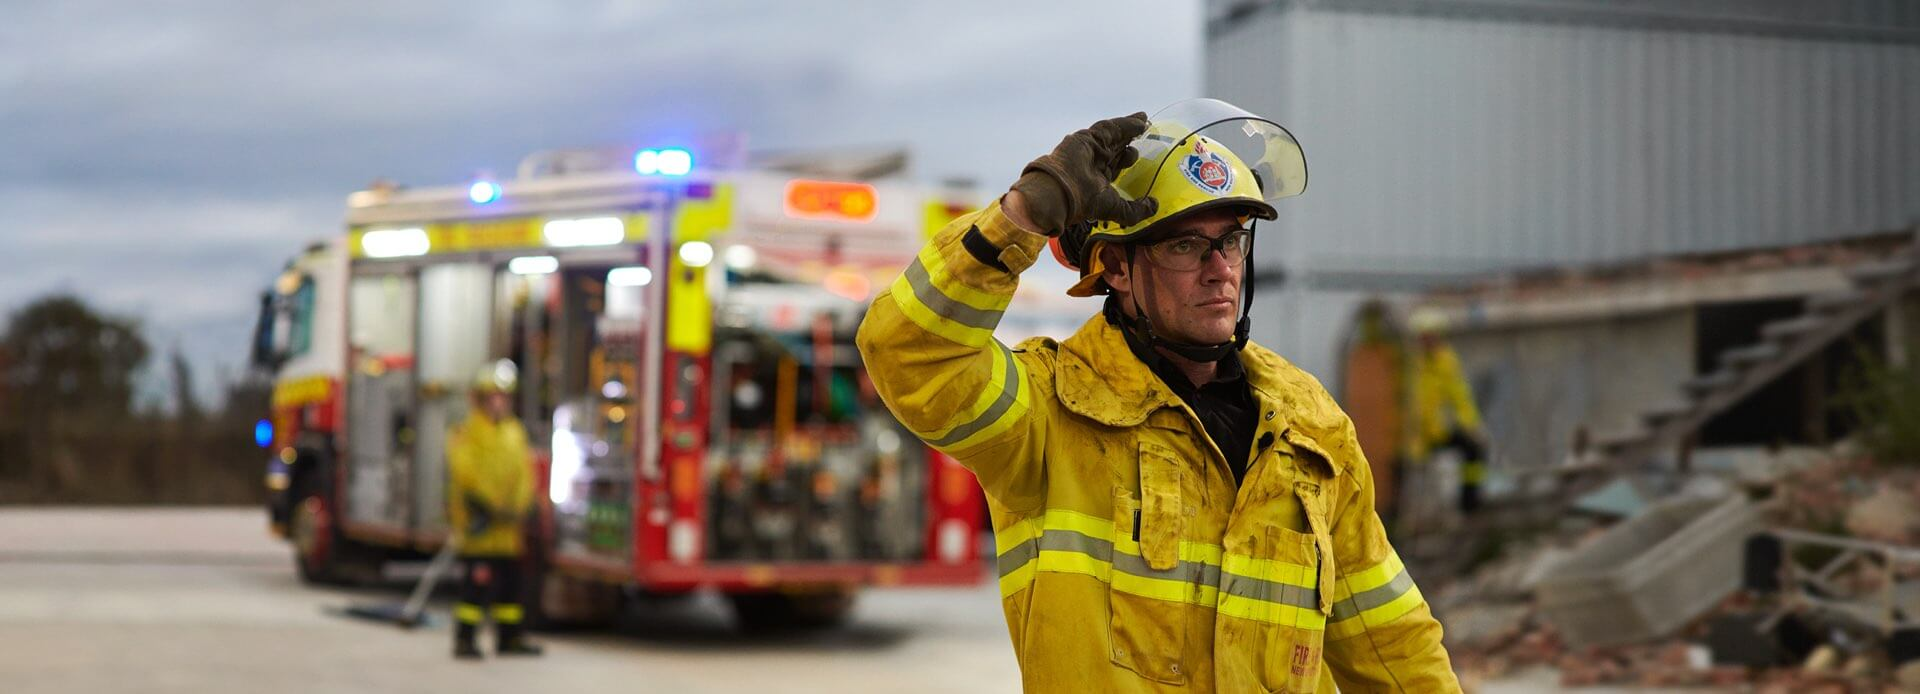 A Firefighter adjusting his helmet. Taken from the Aware Super campaign by The Works.